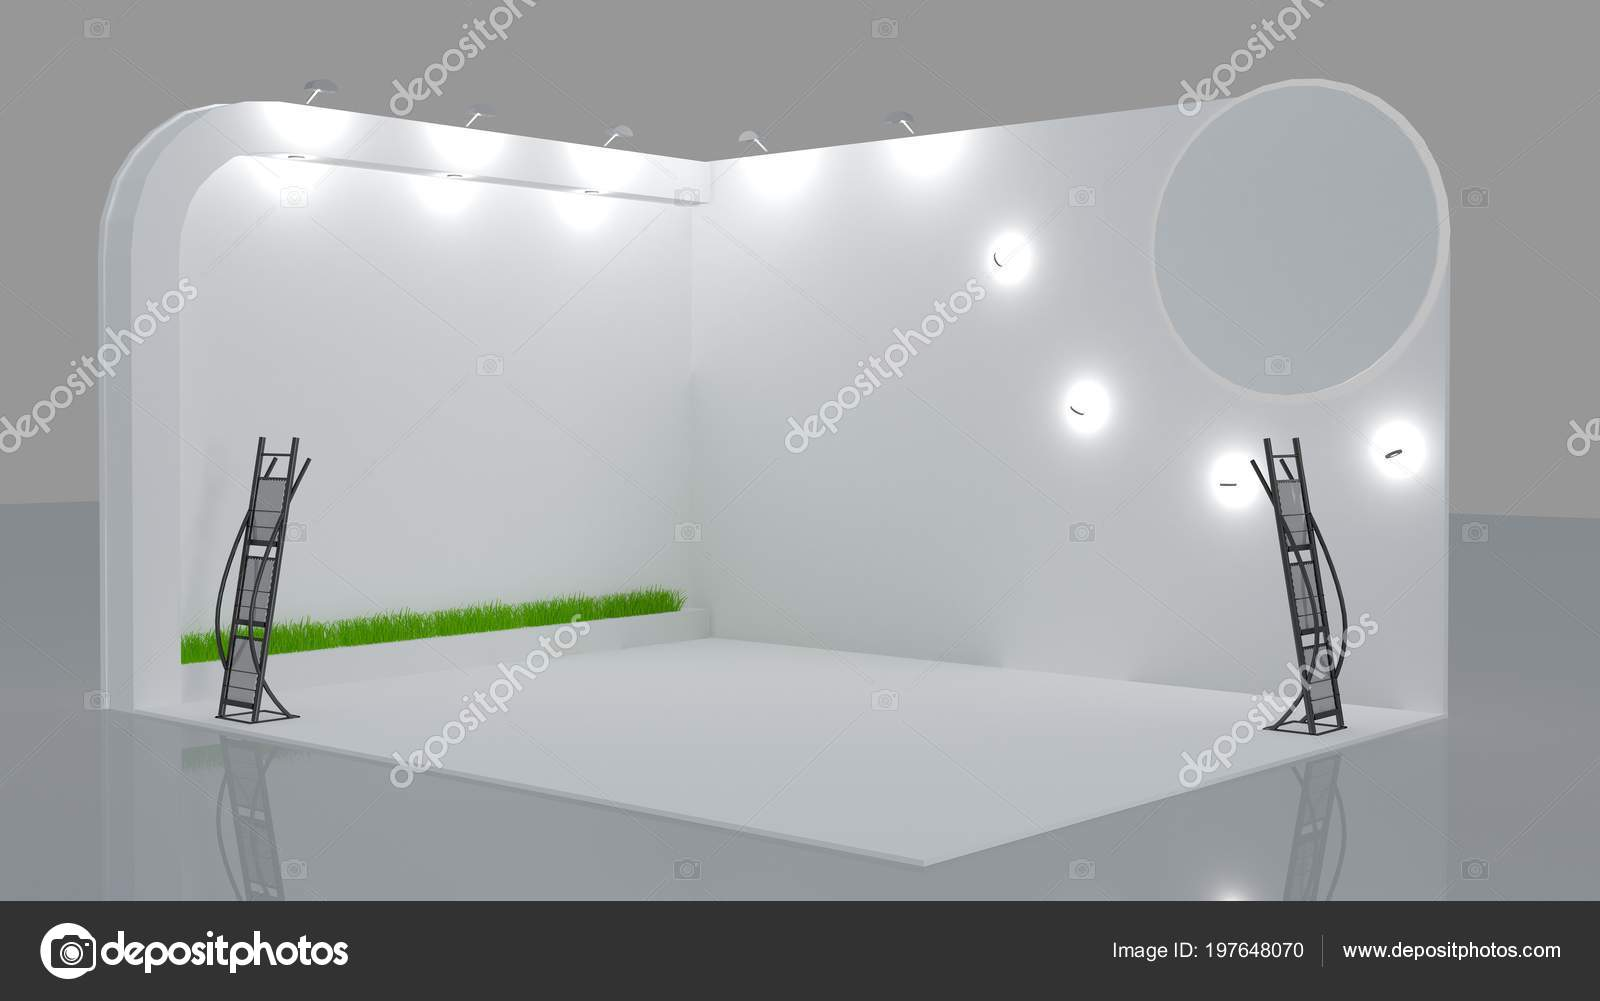 Exhibition Booth Blank : Detailed illustration of a blank exhibition booth eps vector